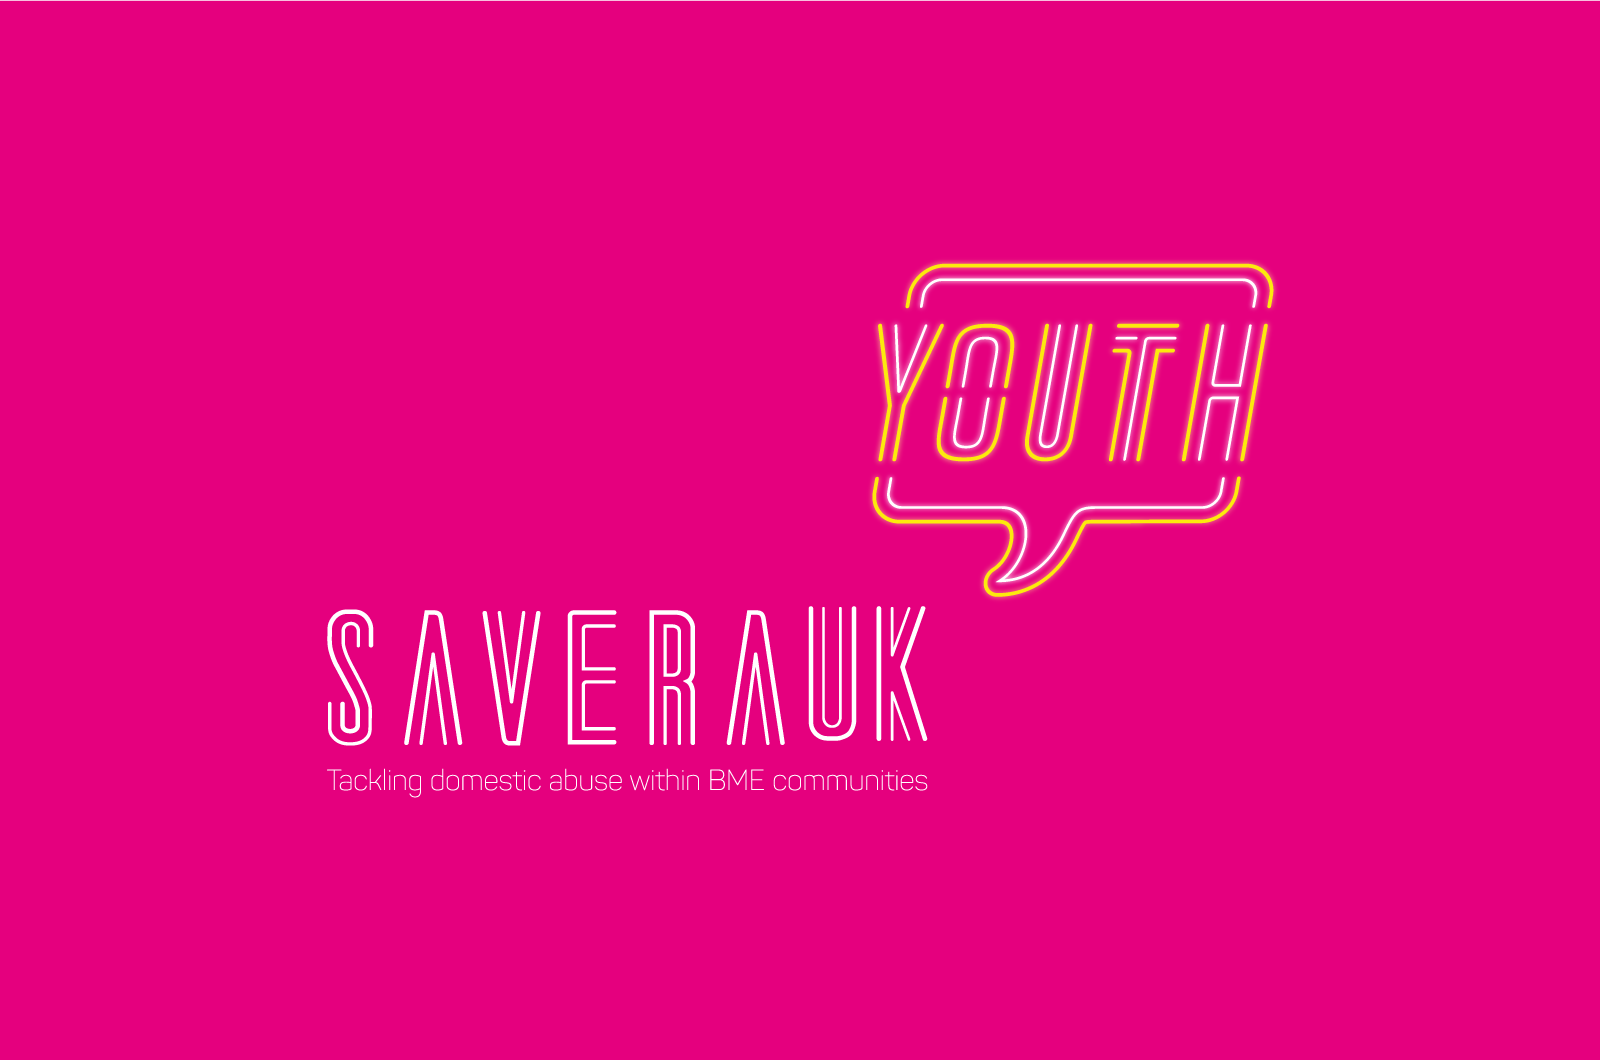 Savera Youth Brand Neon 03